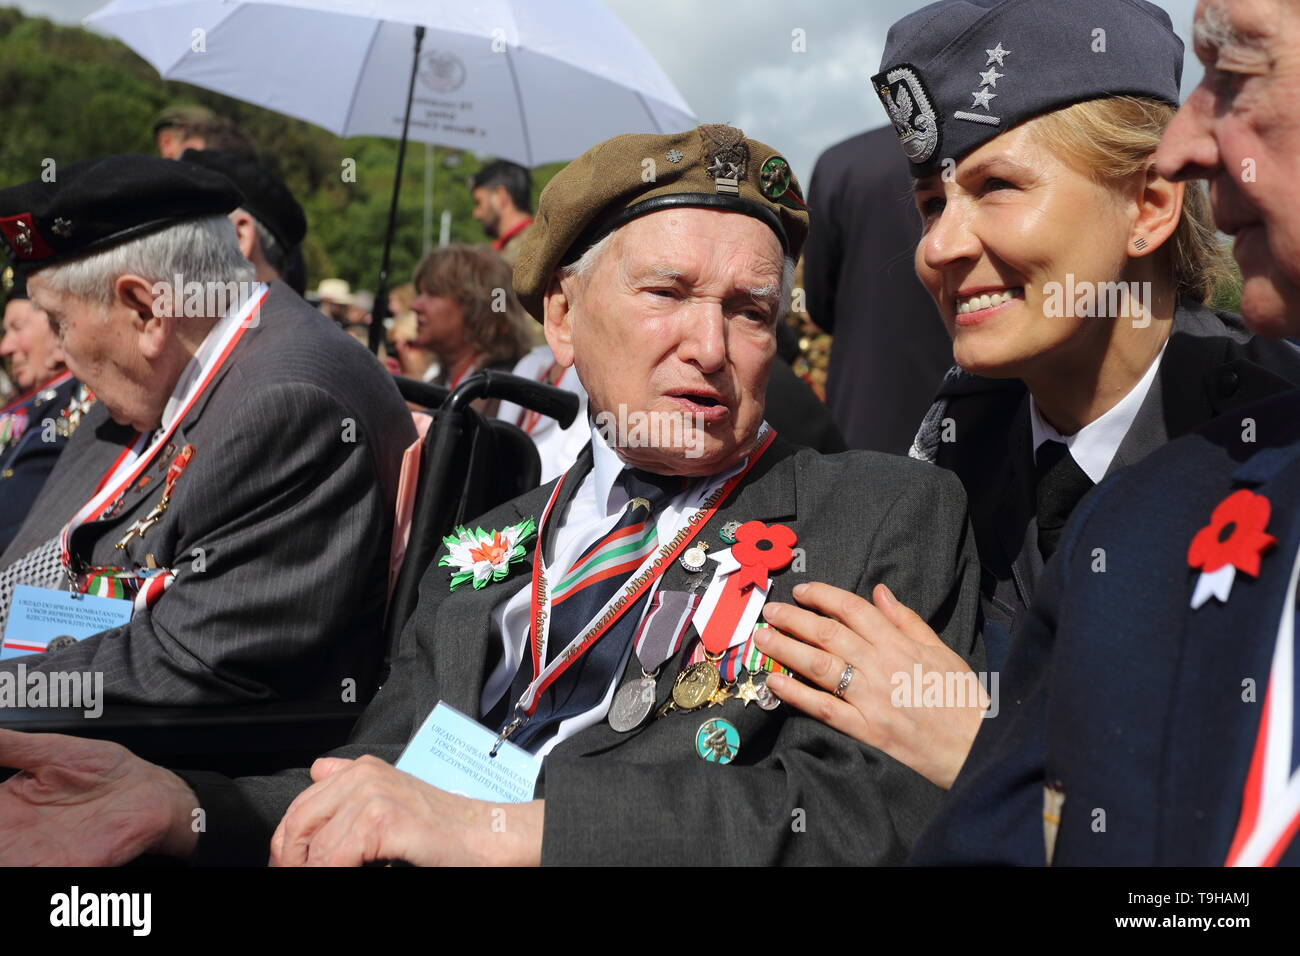 Cassino, Italy - May 18, 2019: Polish veterans participate in the celebrations of the 75th anniversary of the Battle of Montecassino - Stock Image